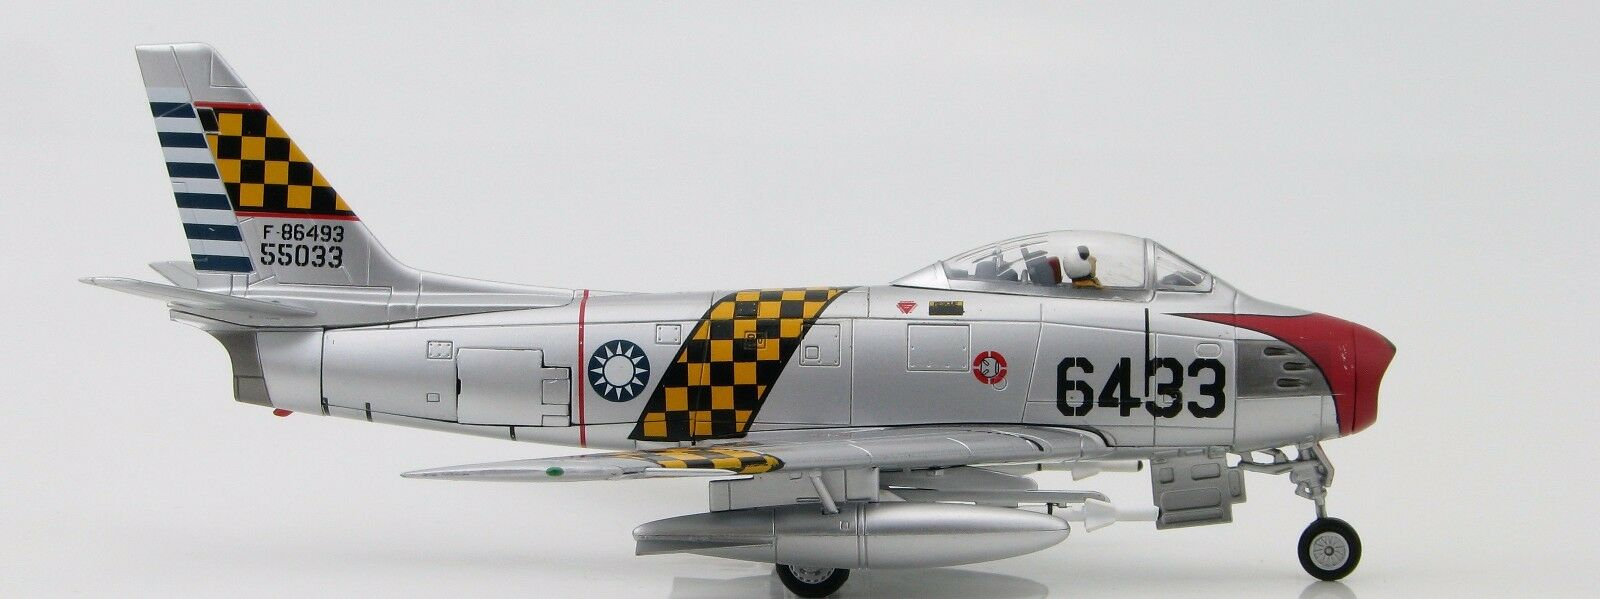 HOBBY MASTER - F-86F SABRE JET - 6433, 1st TFW, ROCAF  -1 72 - MINT & BOXED